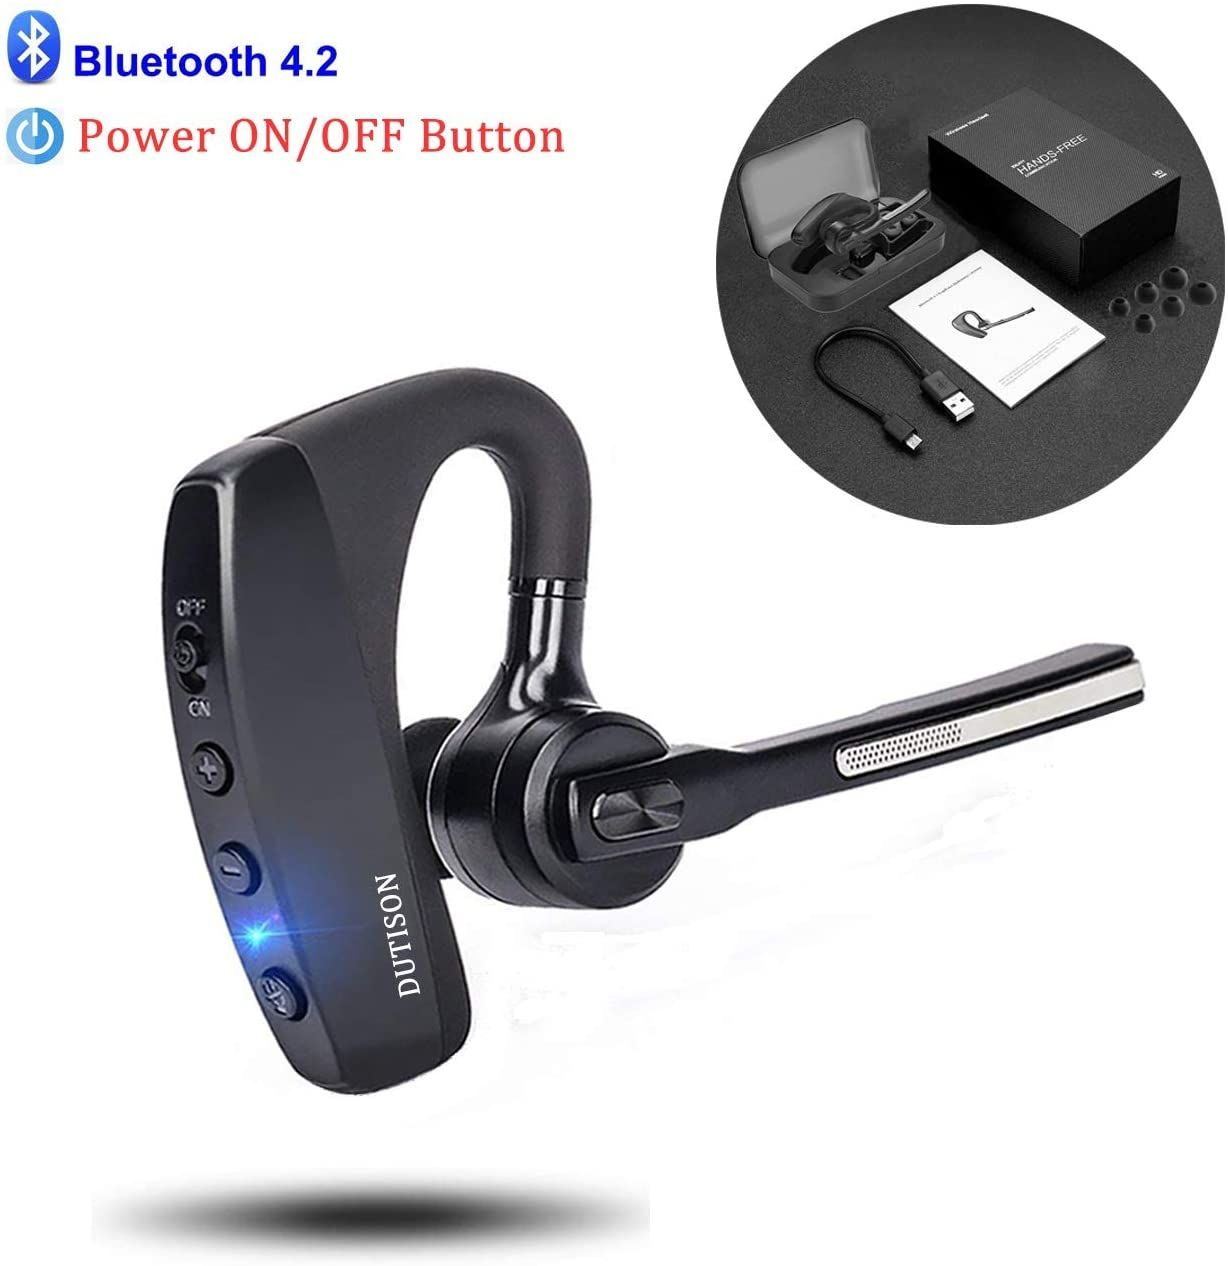 Bluetooth Headset Compatible For Iphone Androiddutison Single Ear Hands Free Earpiece With Dual Mic Amazon Affiliate Link In 2020 Bluetooth Headset Headset Earpiece